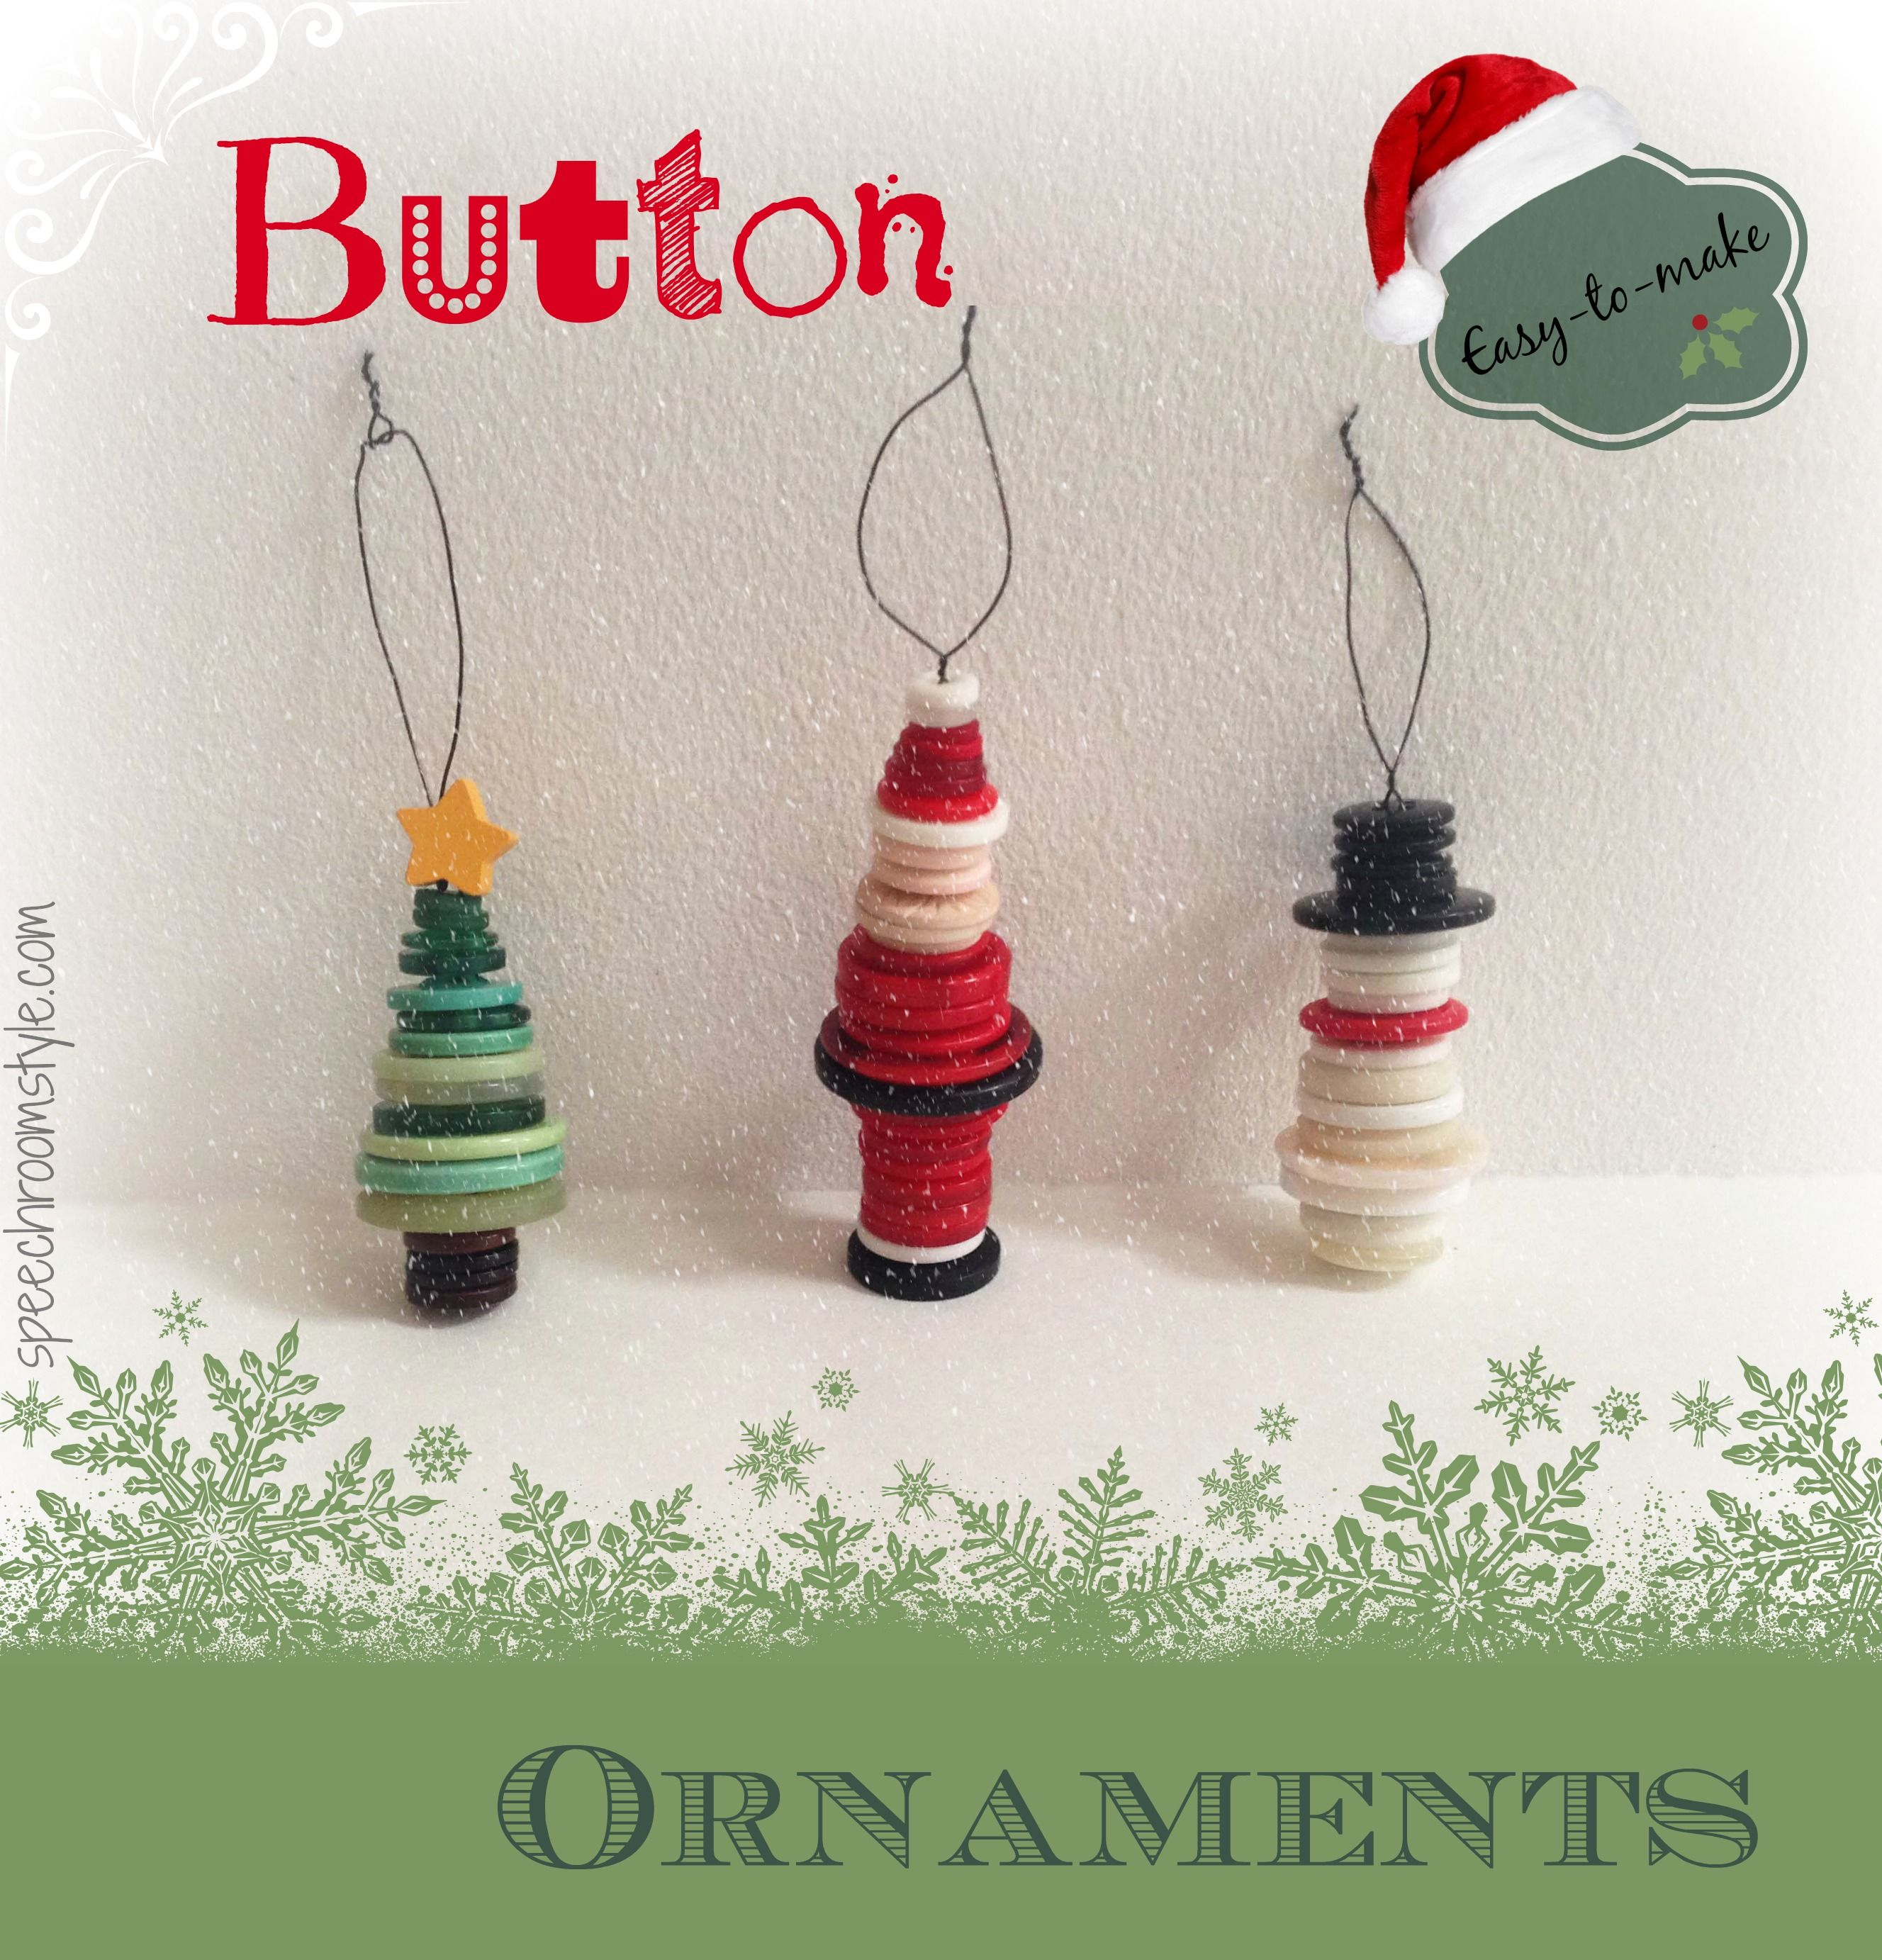 Easy Christmas Crafts: #8 Button Ornaments